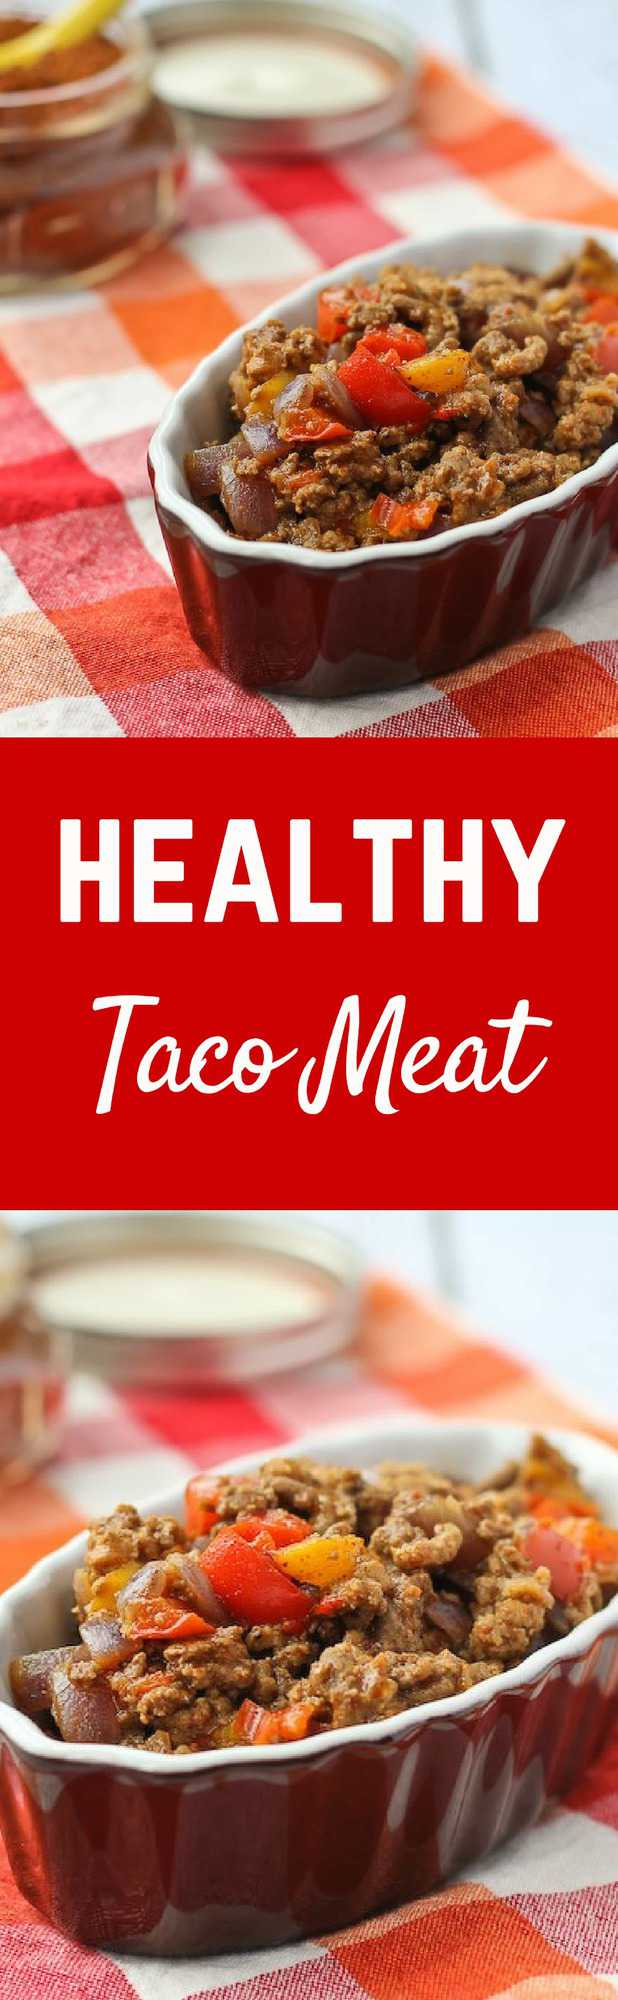 This healthy taco meat is something I could make with my eyes closed. Some vegetable additions make this budget AND waist-friendly! Get the recipe on RachelCooks.com!